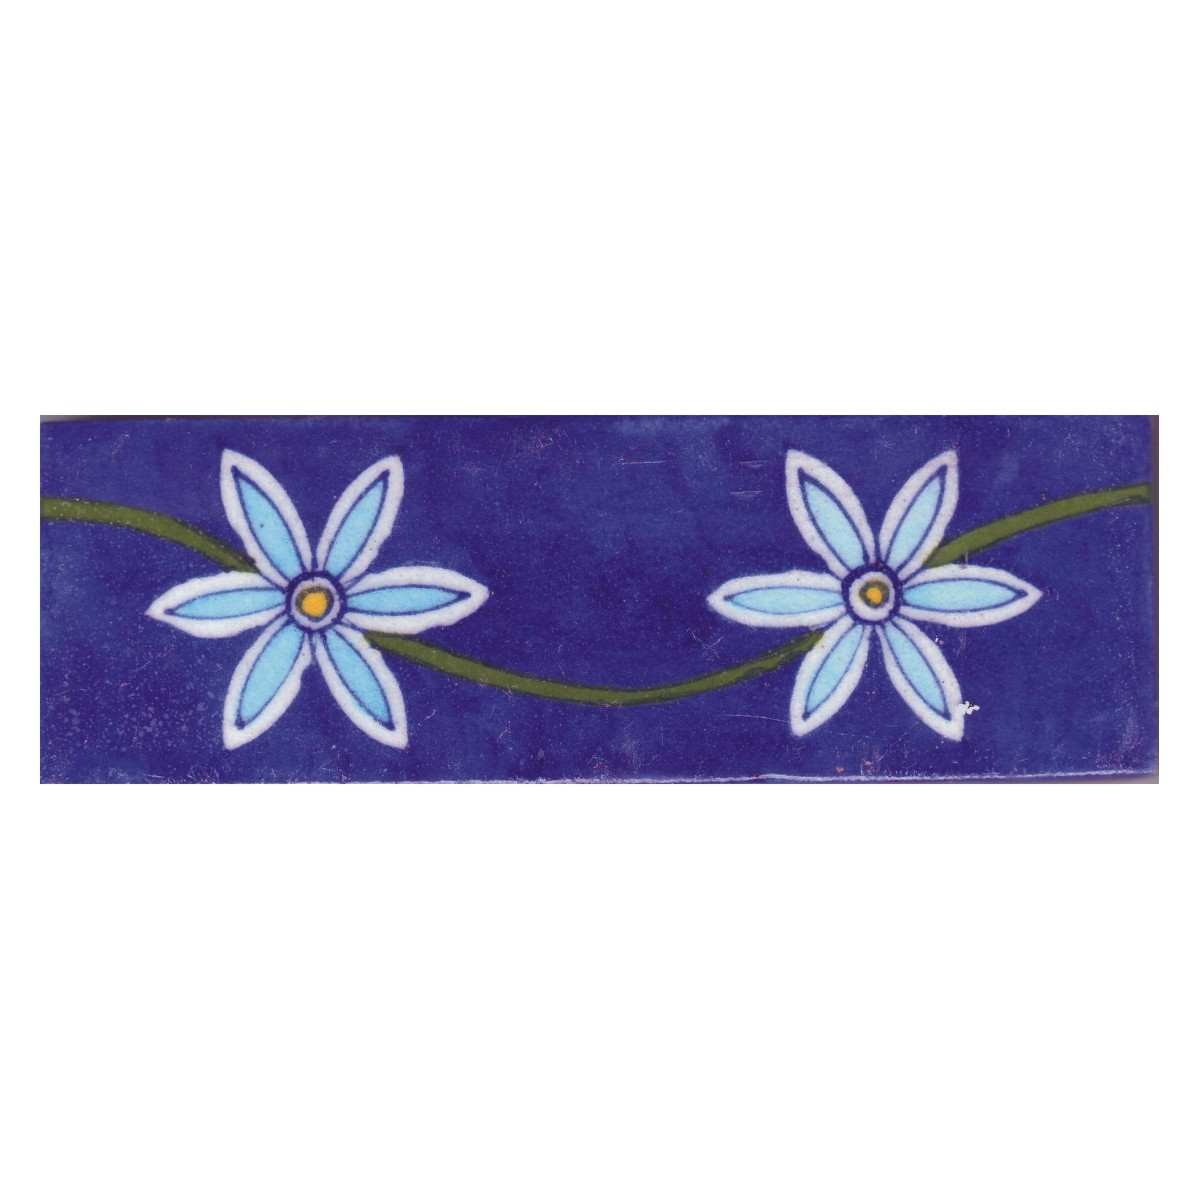 Turquoise And White Flowers And With Blue Base Tile Knobco